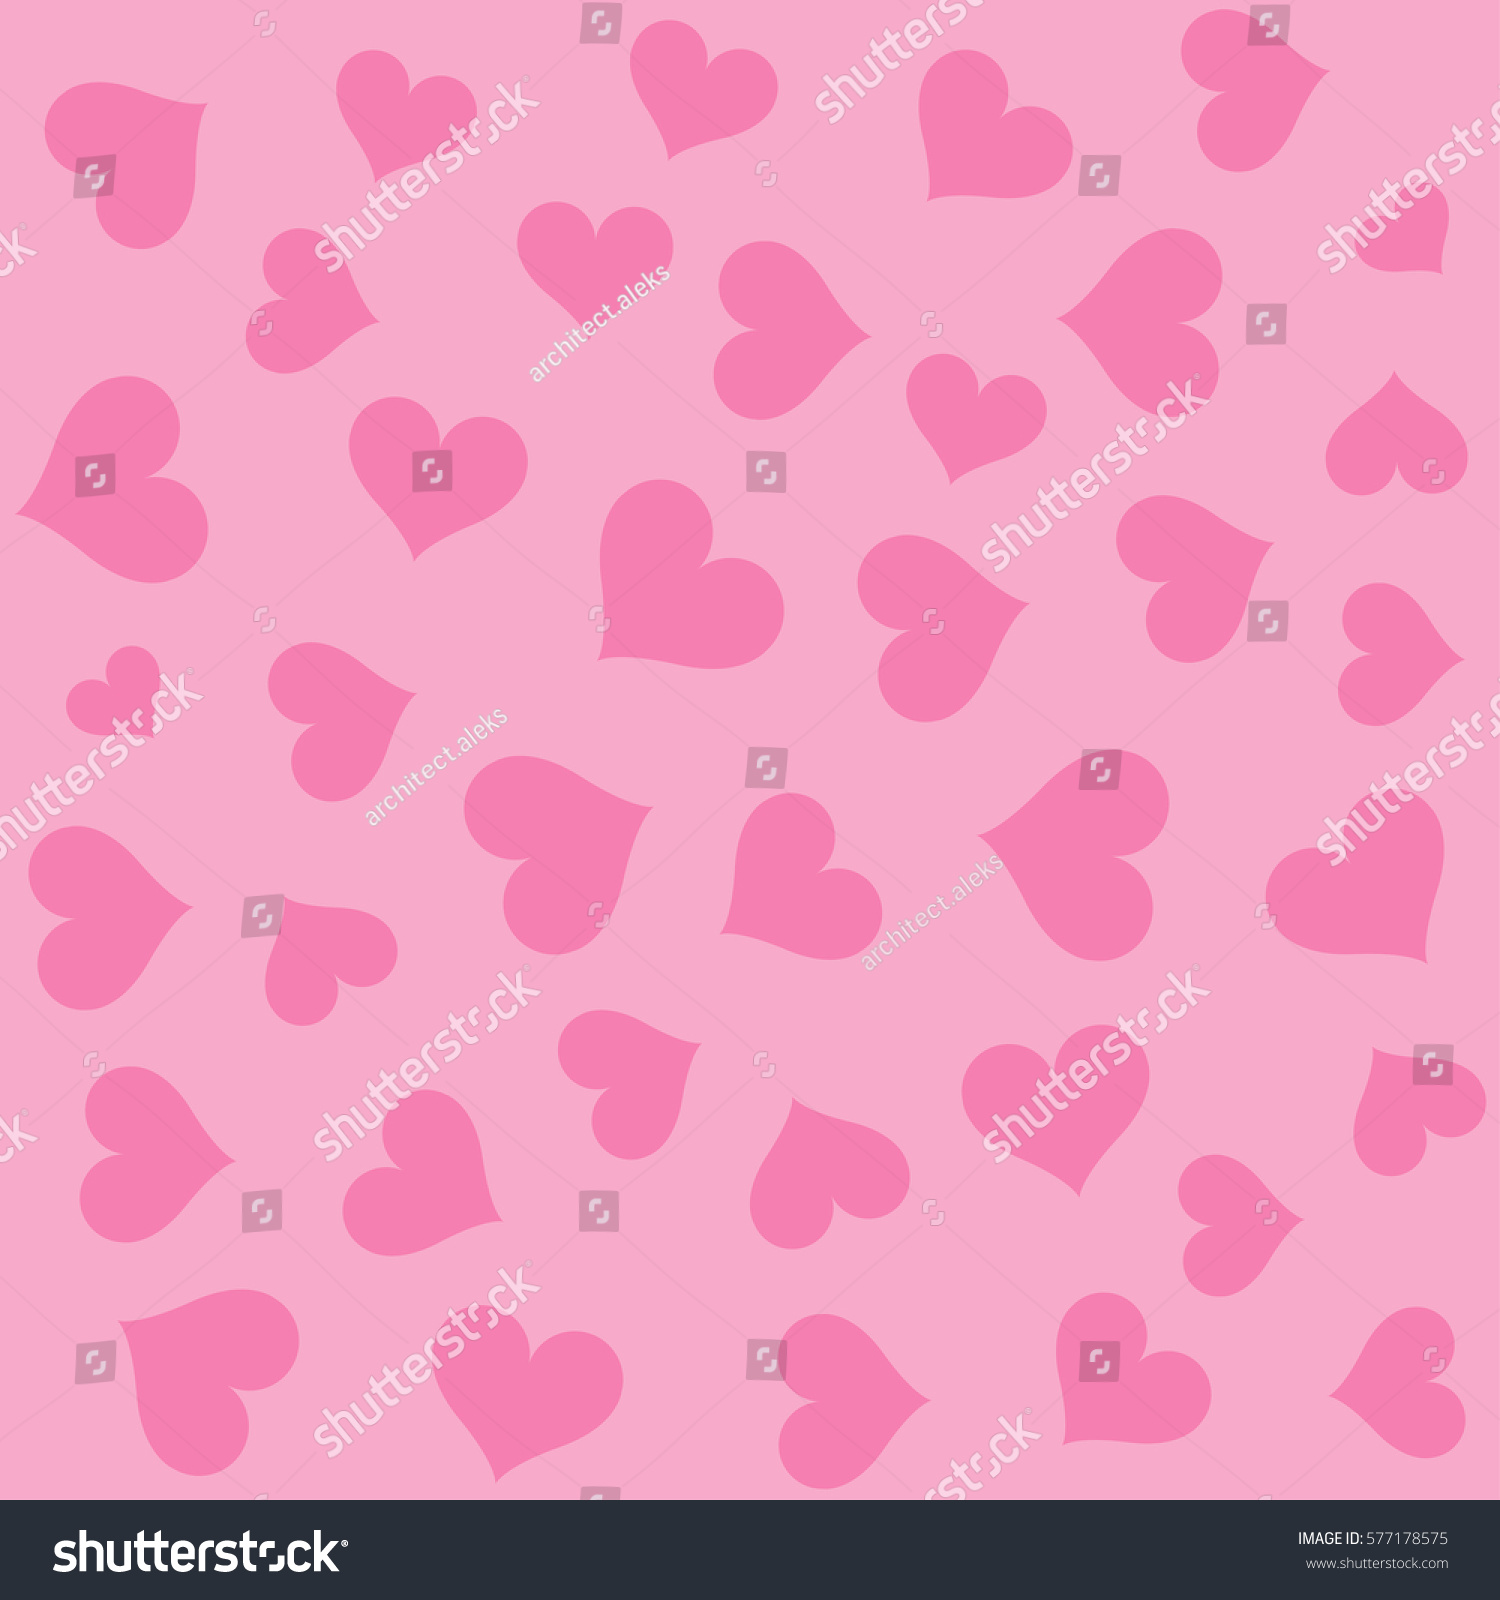 Pink Hearts Background Pattern Stock Vector 577178575 - Shutterstock